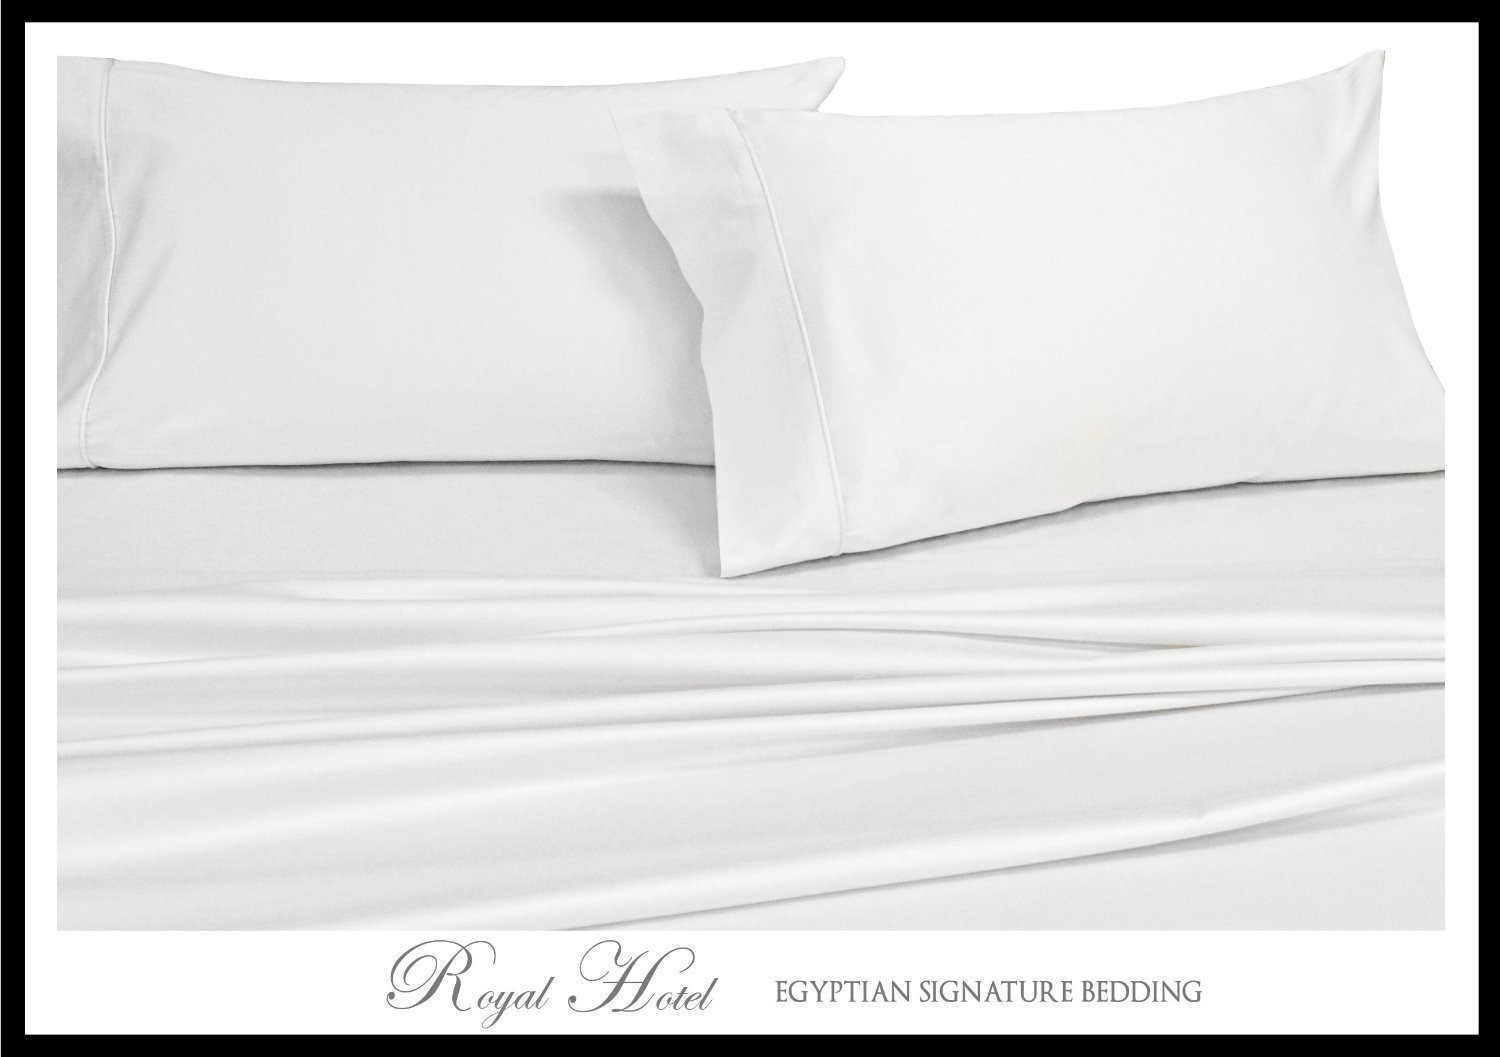 Solid White Top-Split-King: Adjustable King Bed Size Sheets, 4PC Bed Sheet Set, 100% Cotton, 300 Thread Count, Sateen Solid, Deep Pocket, by Royal Hotel